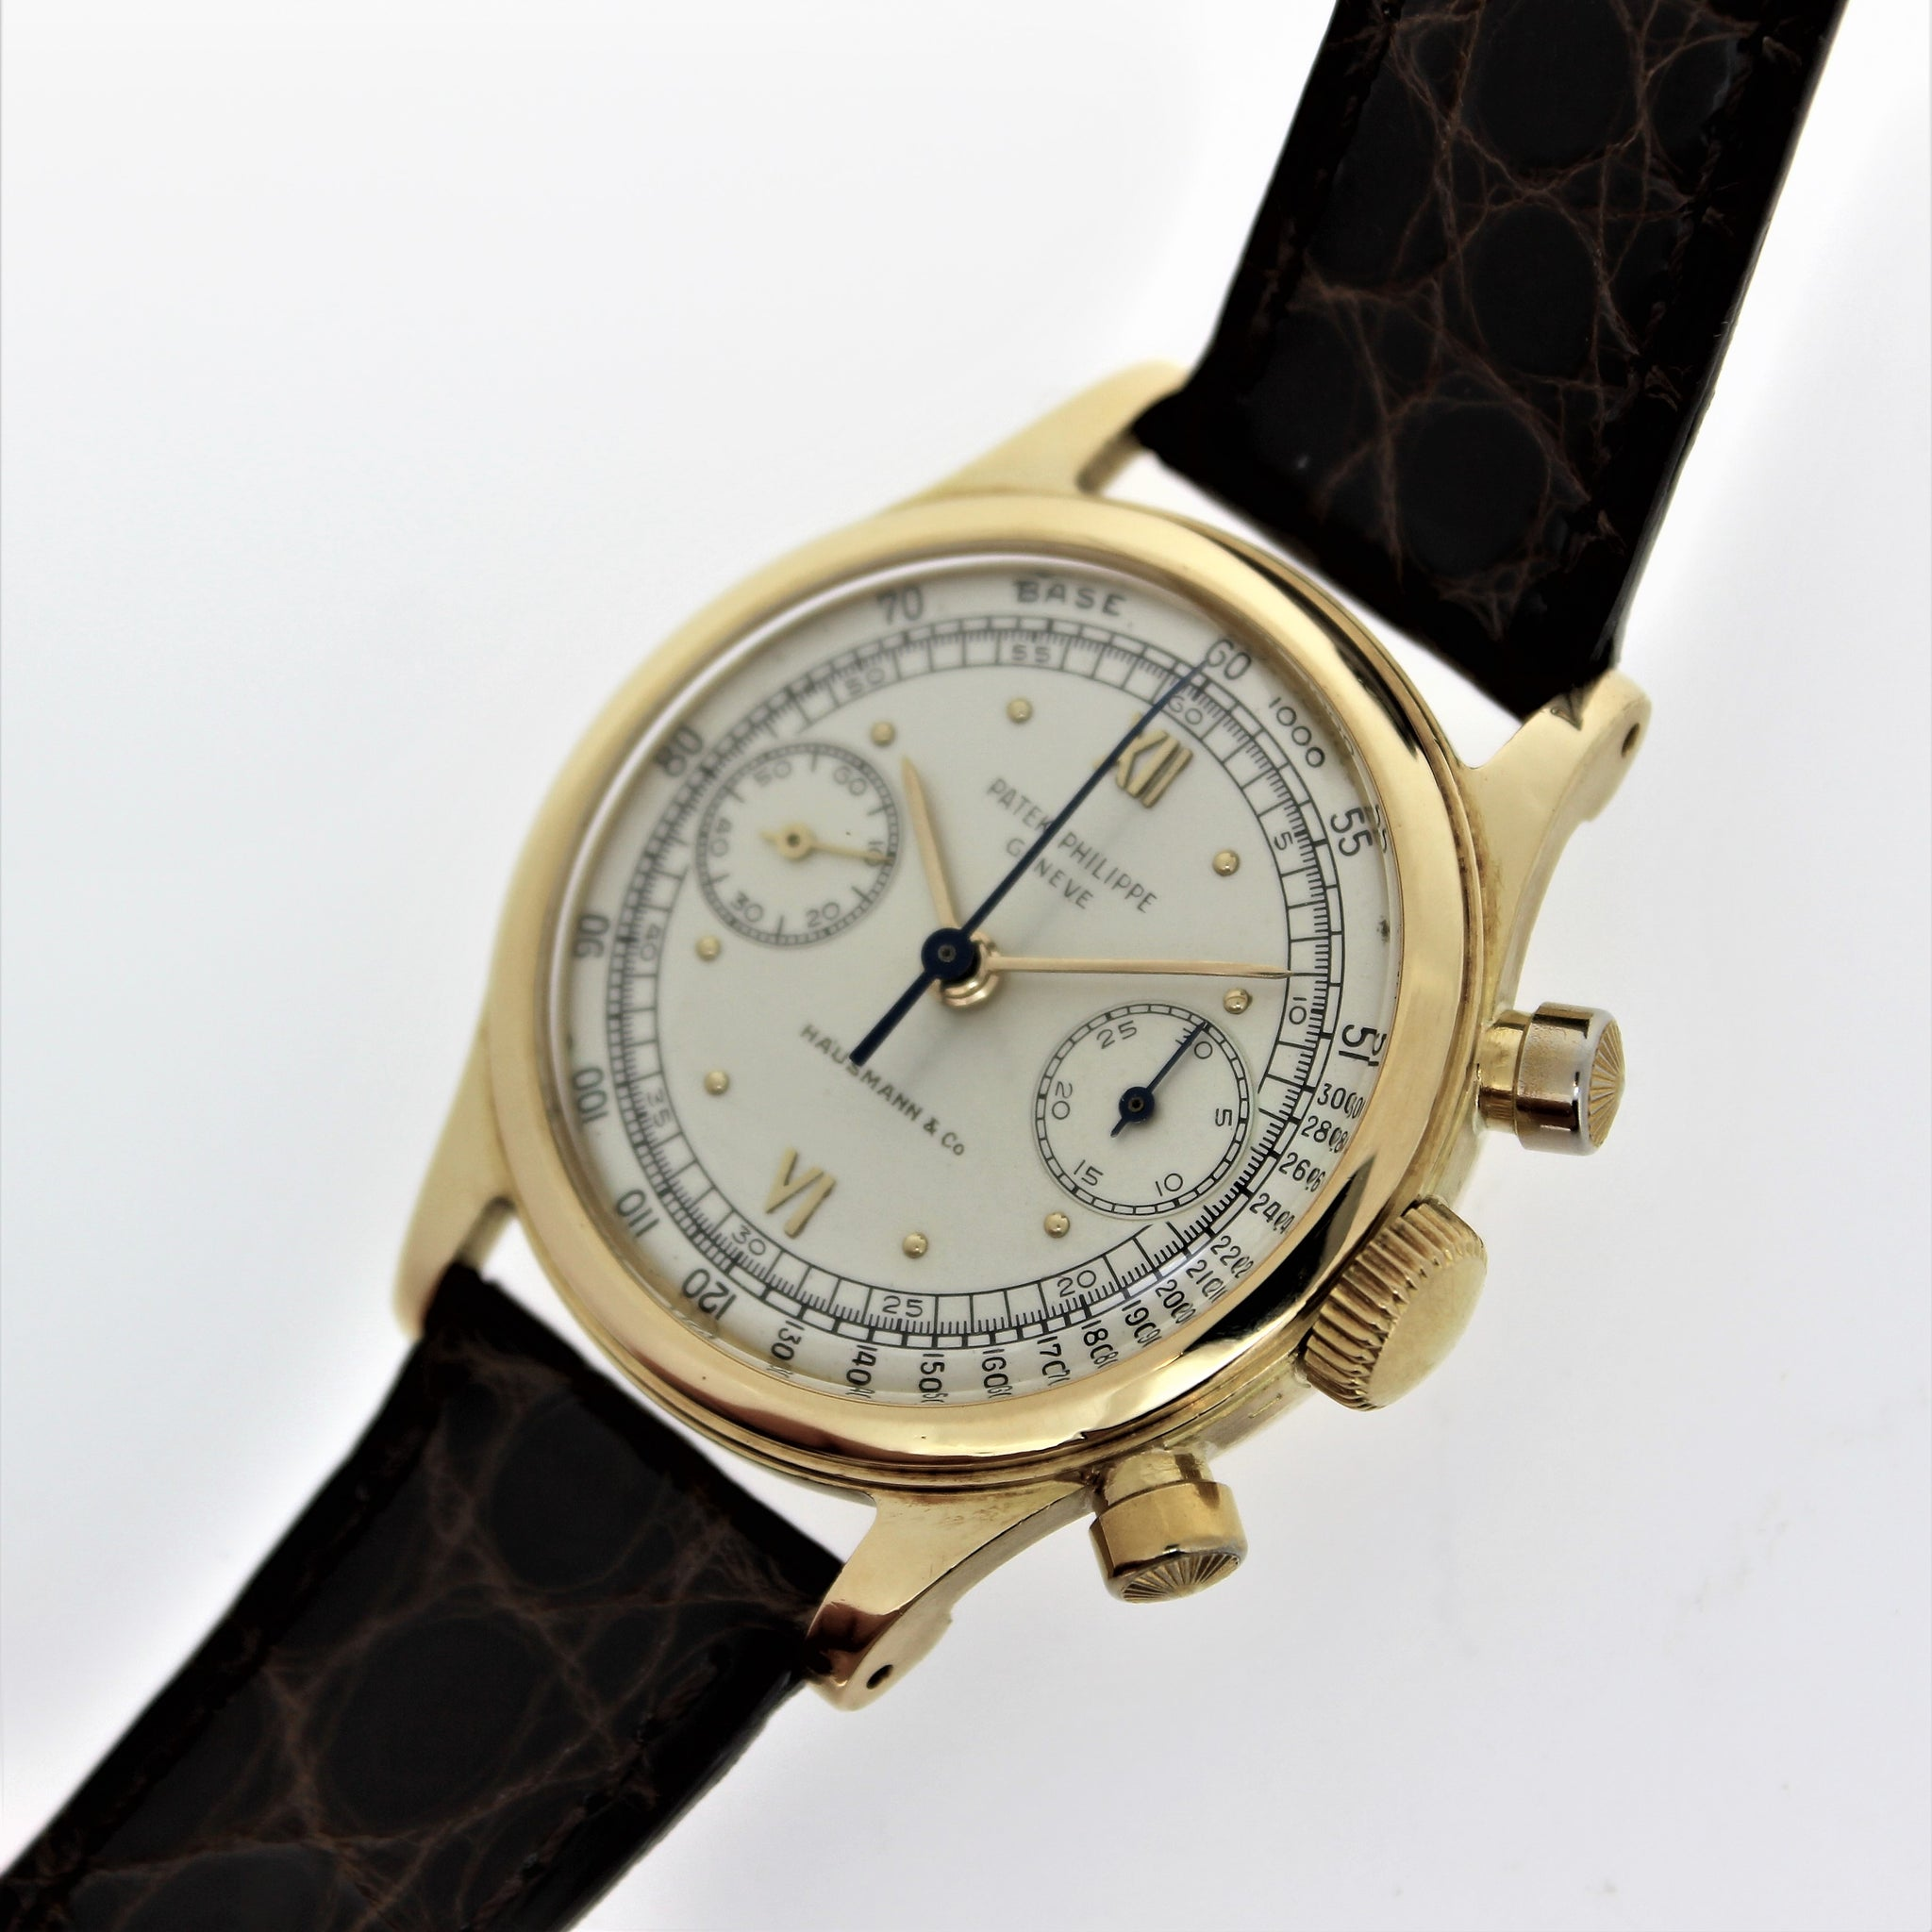 Patek Philippe 1463J Chronograph Watch